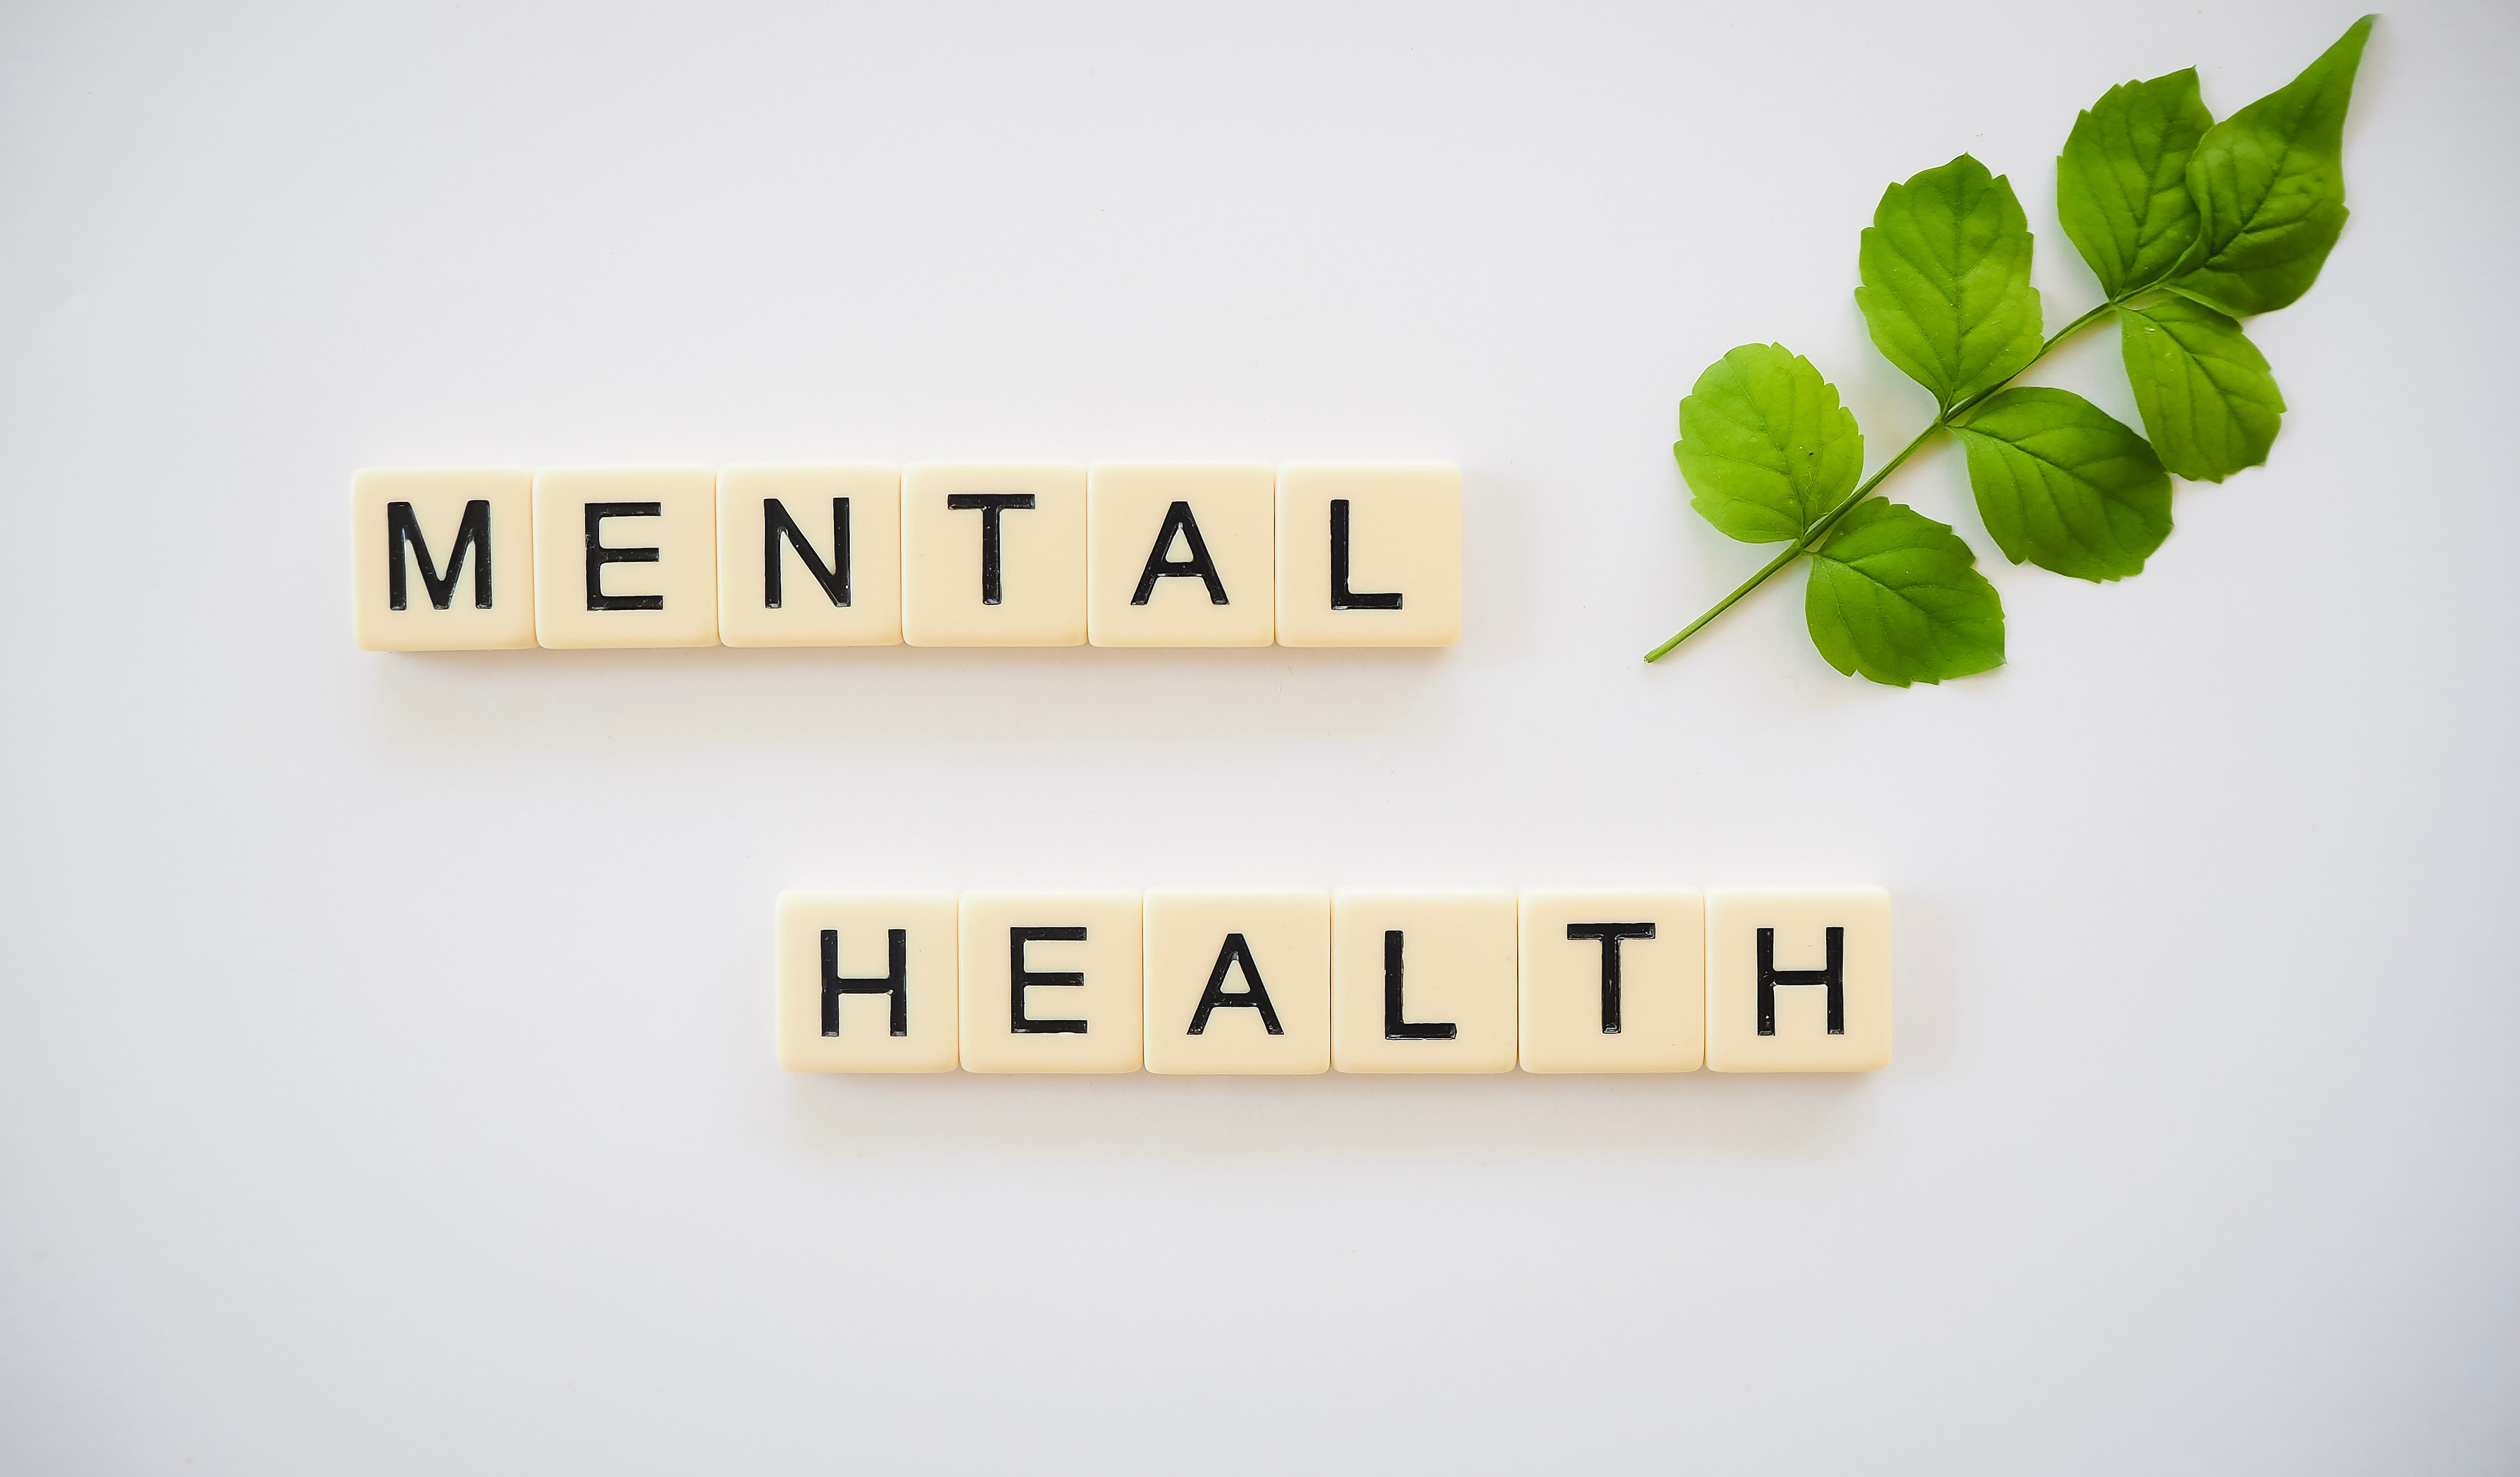 Employer Flexible Corporate Wellness Programs Can Help You Stand Out Mental Health Scrabble Tiles